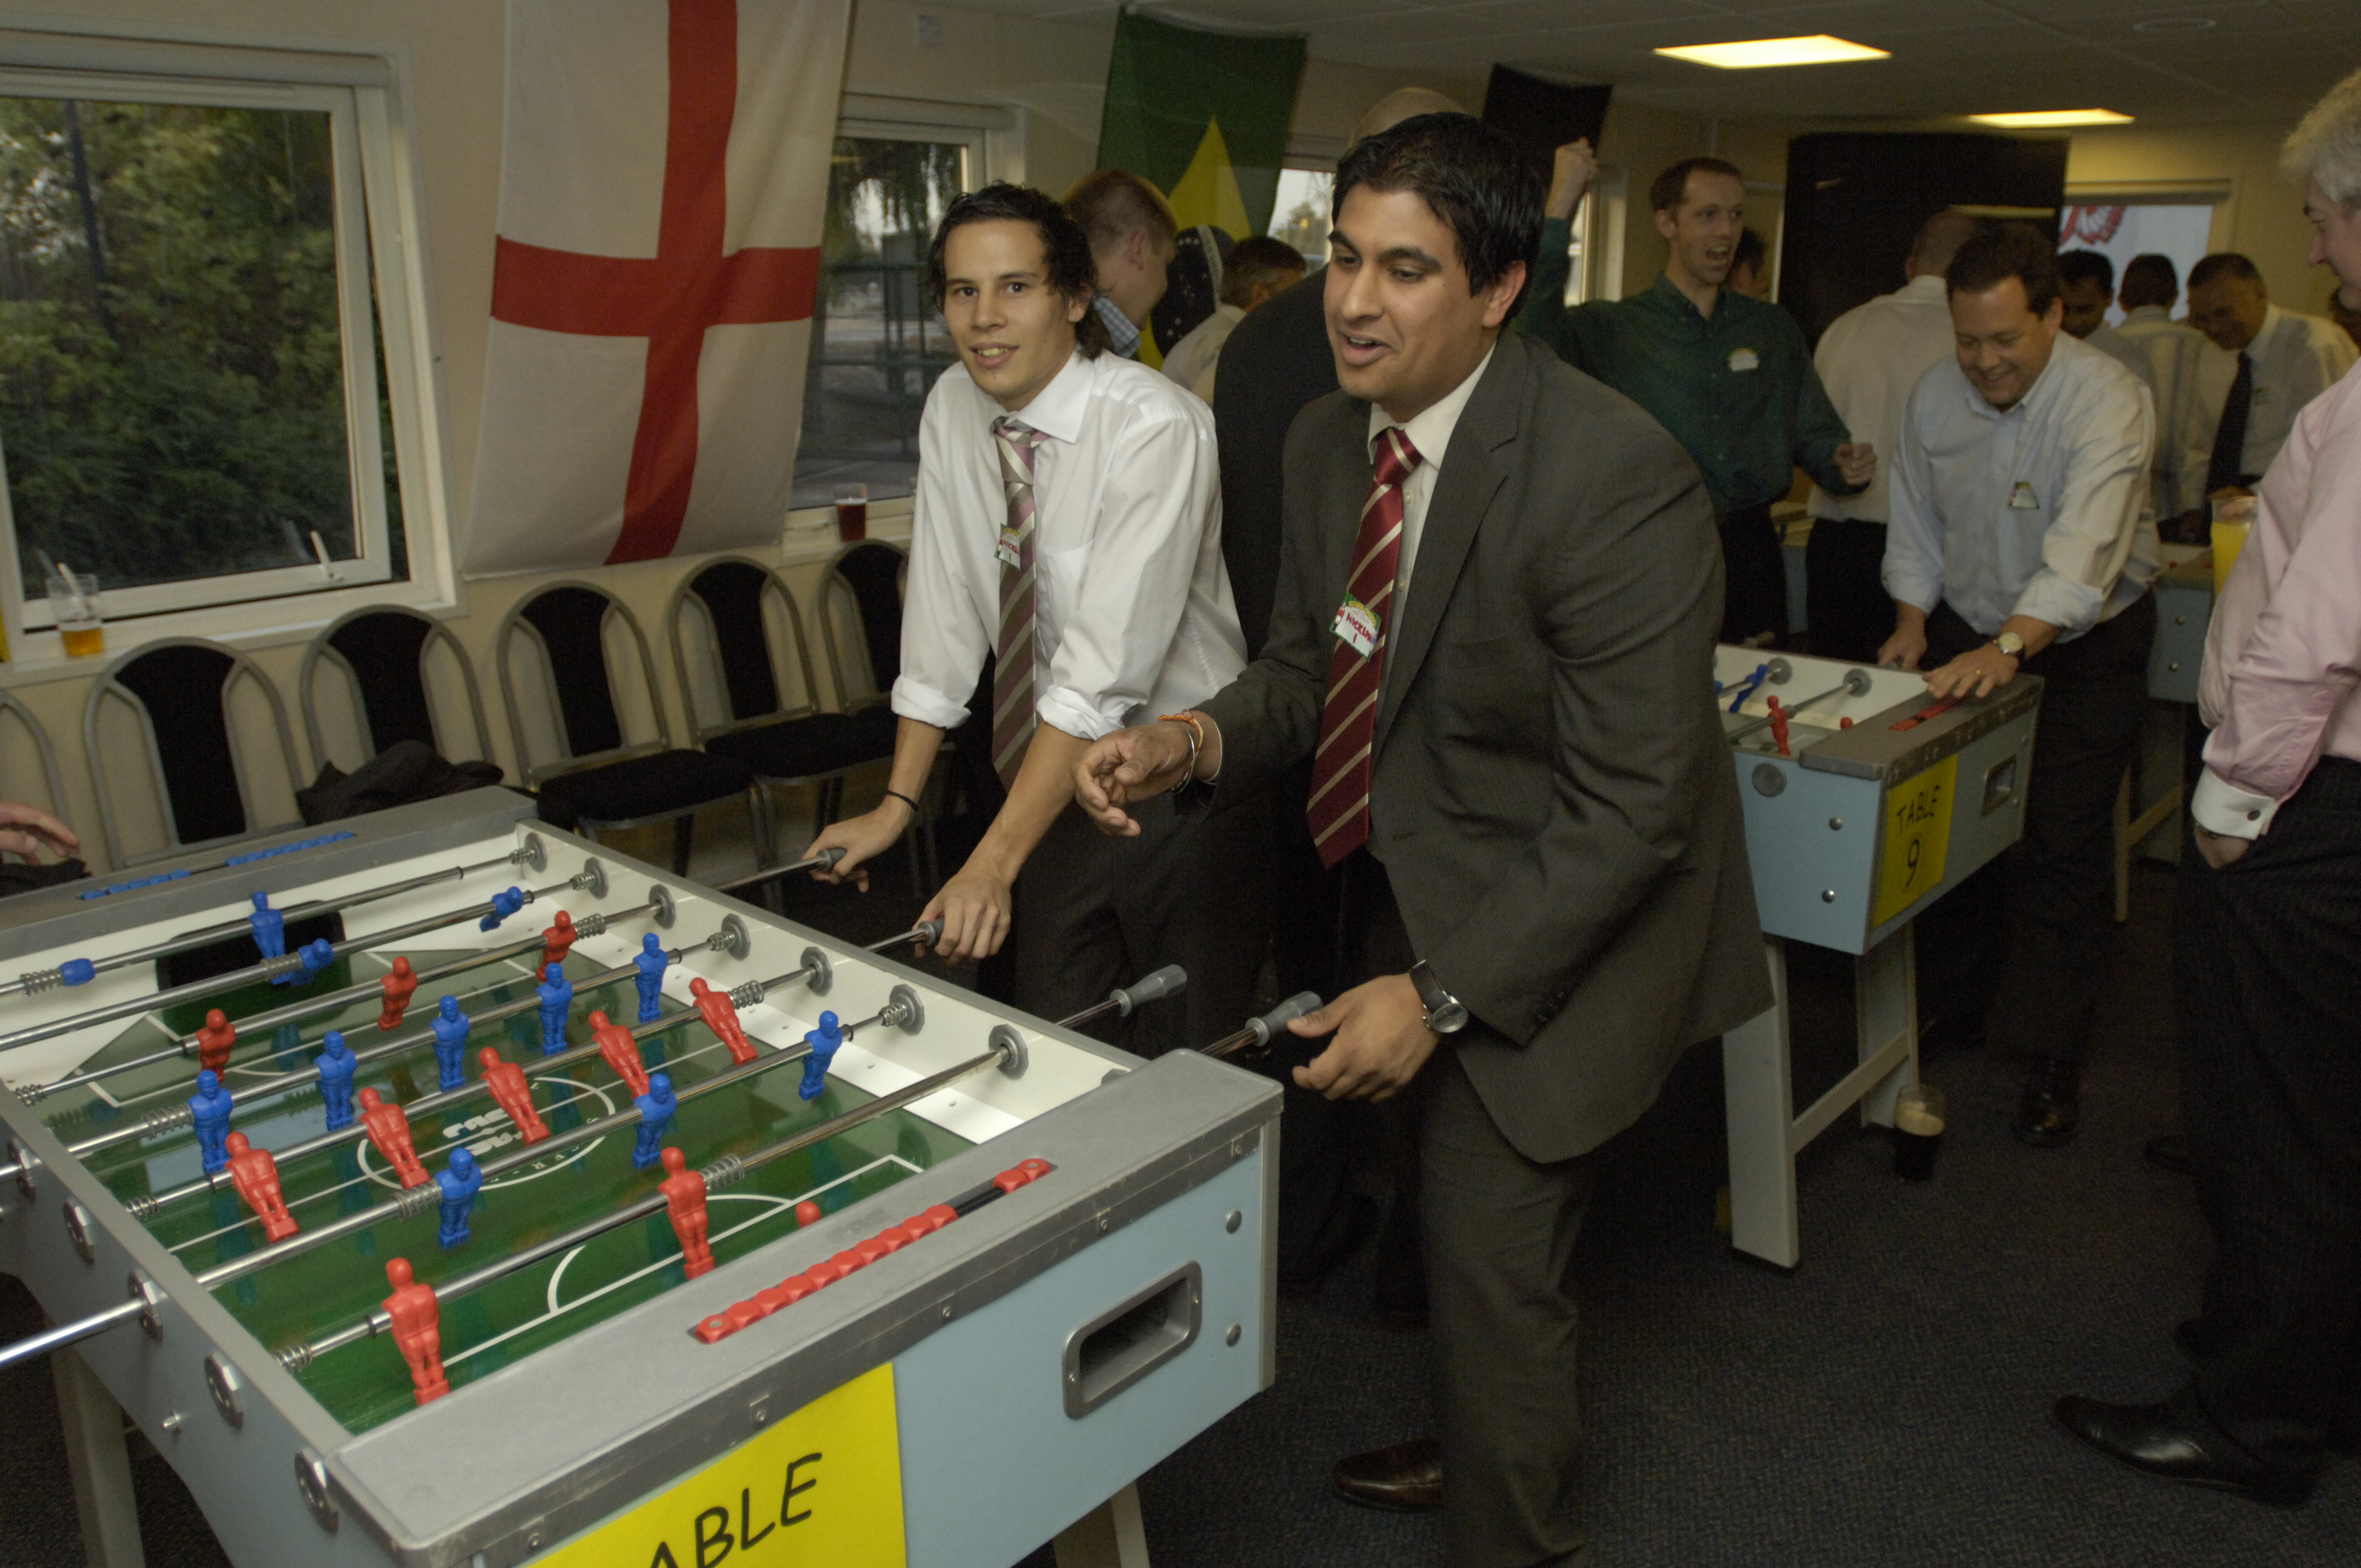 Table Footy Worcester7